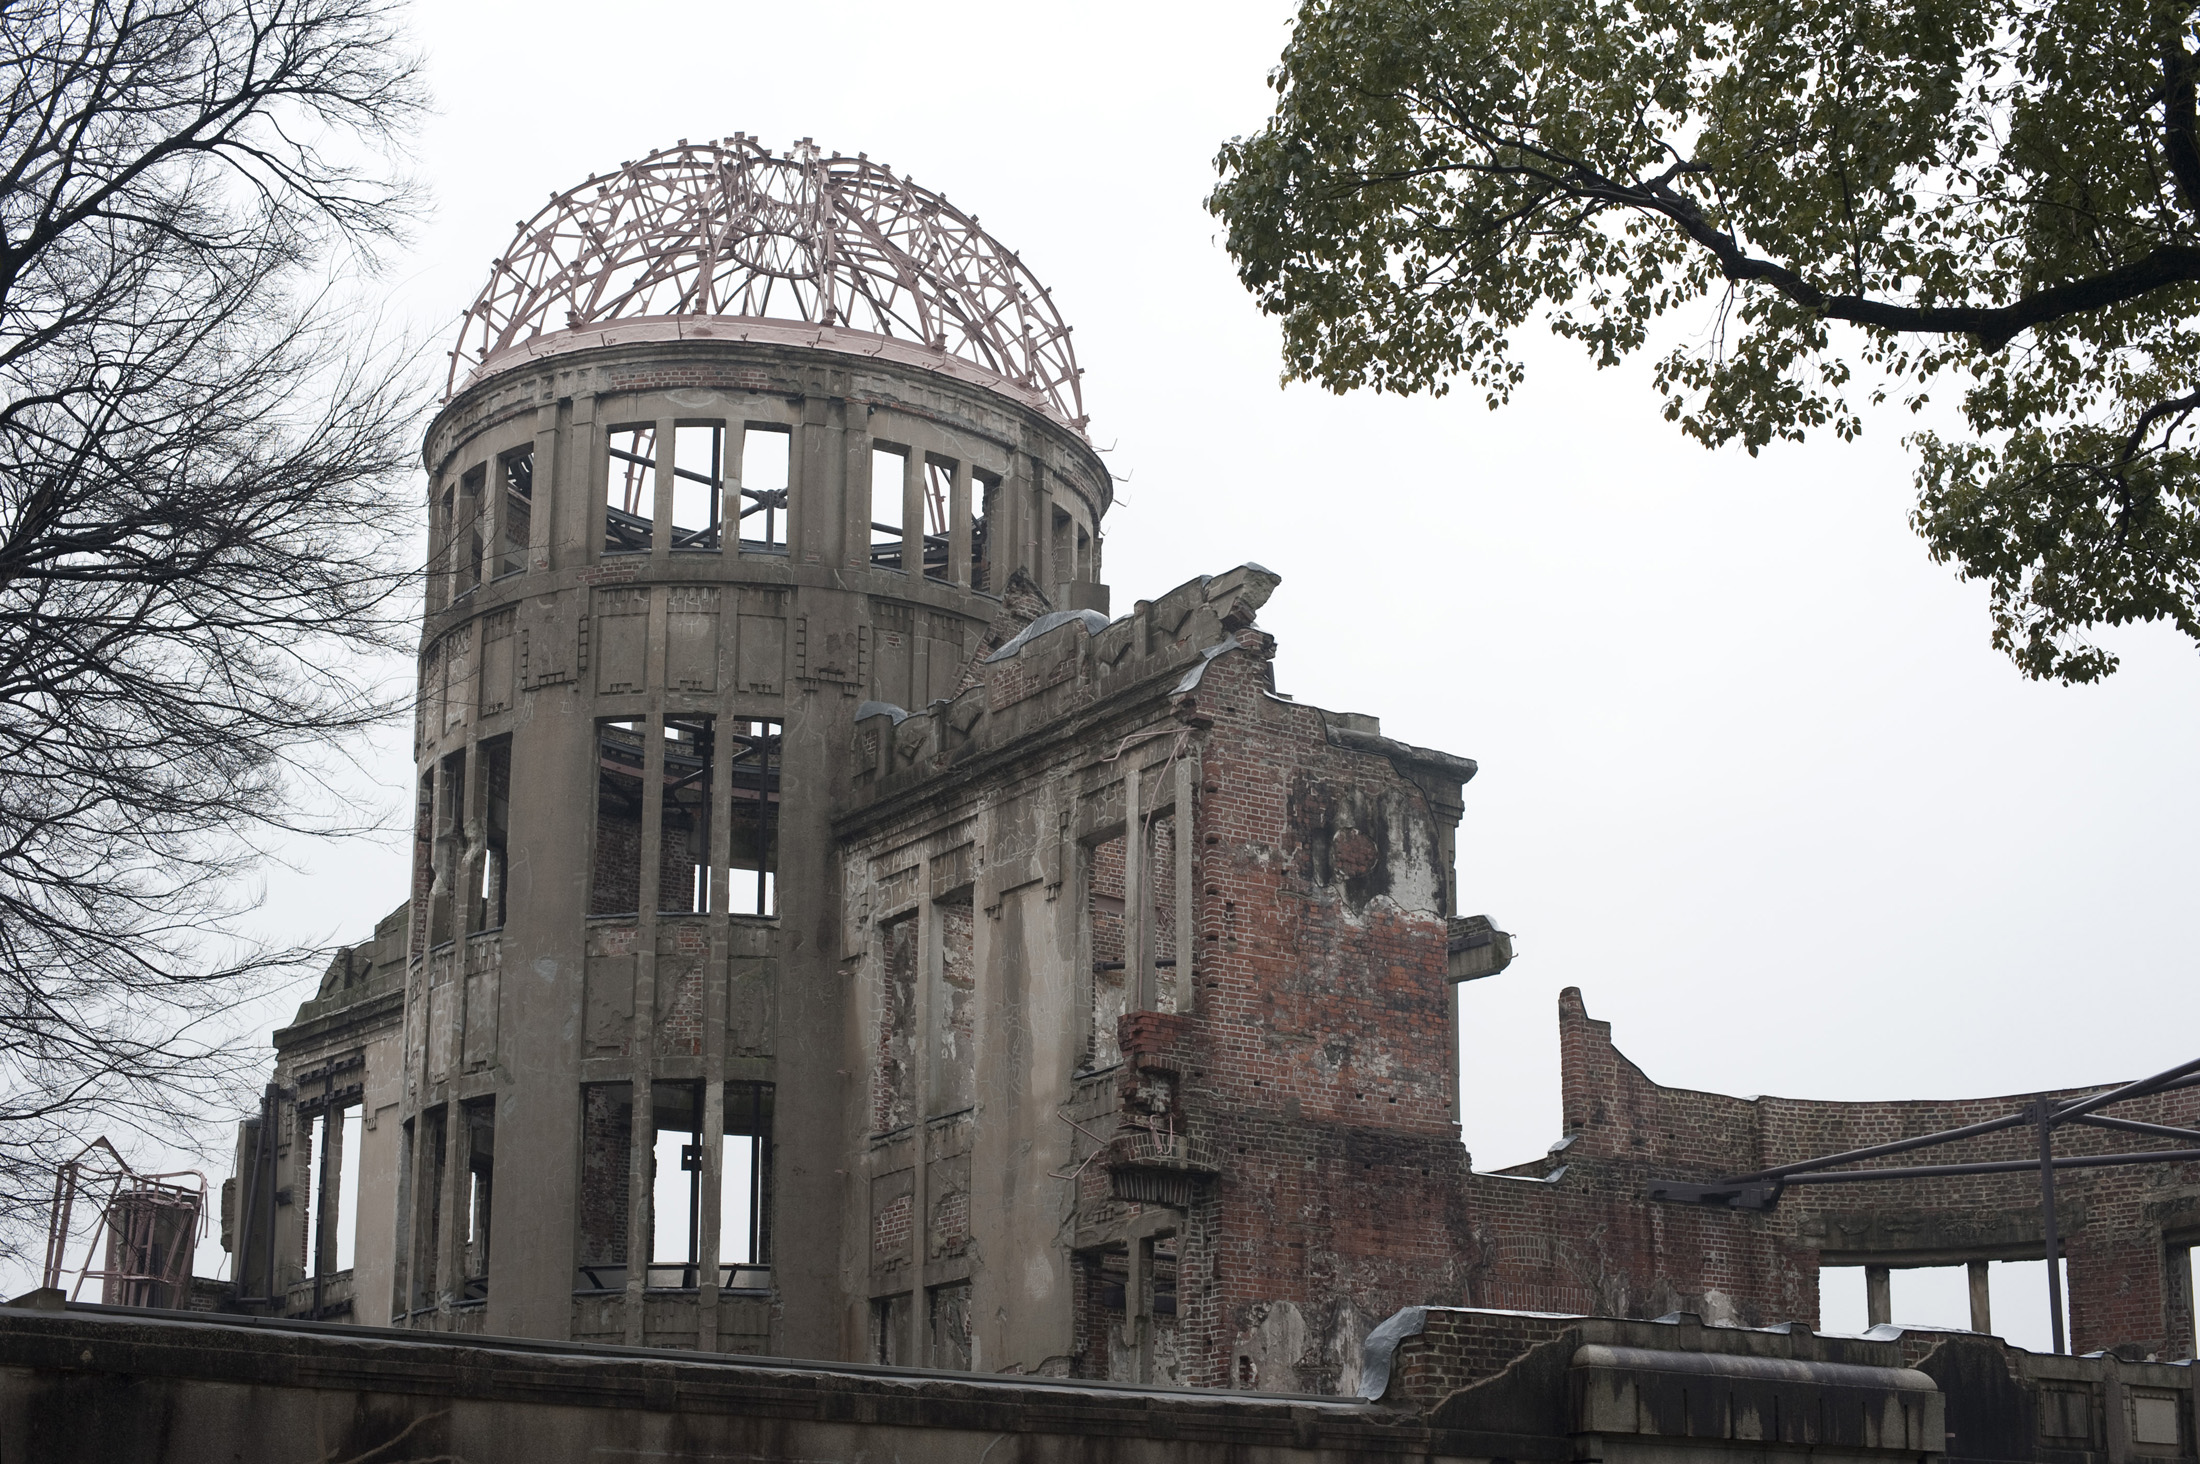 Hiroshima Peace Memorial, commonly called the Atomic Bomb Dome or A-Bomb Dome, Genbaku Dome